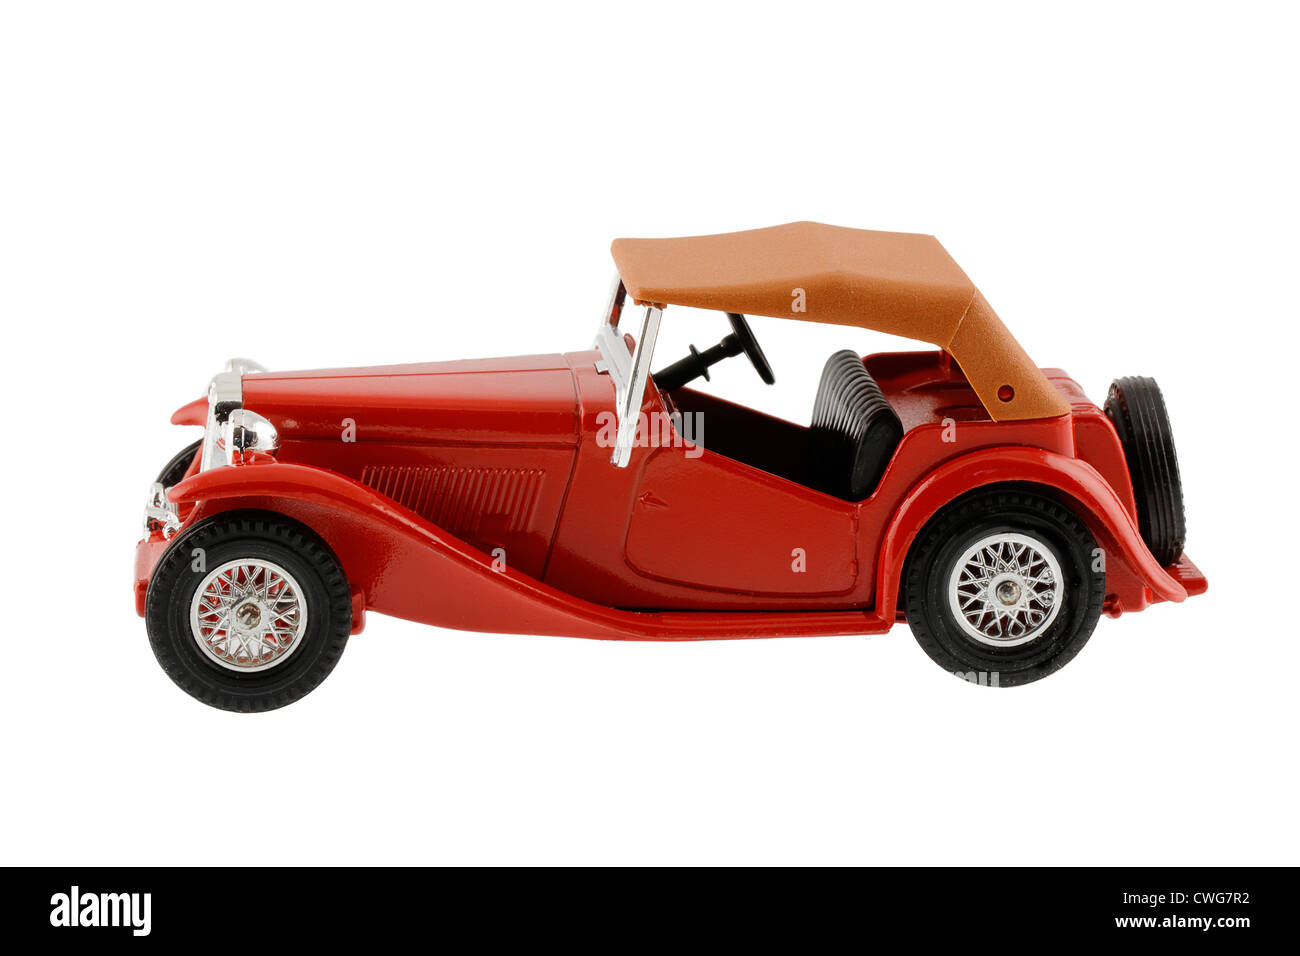 1945 MG TC Midget Open Two Seater Touring Sports Car - Slab Fuel Tank, rear mounted spare wheel, swept wings - scale - Stock Image